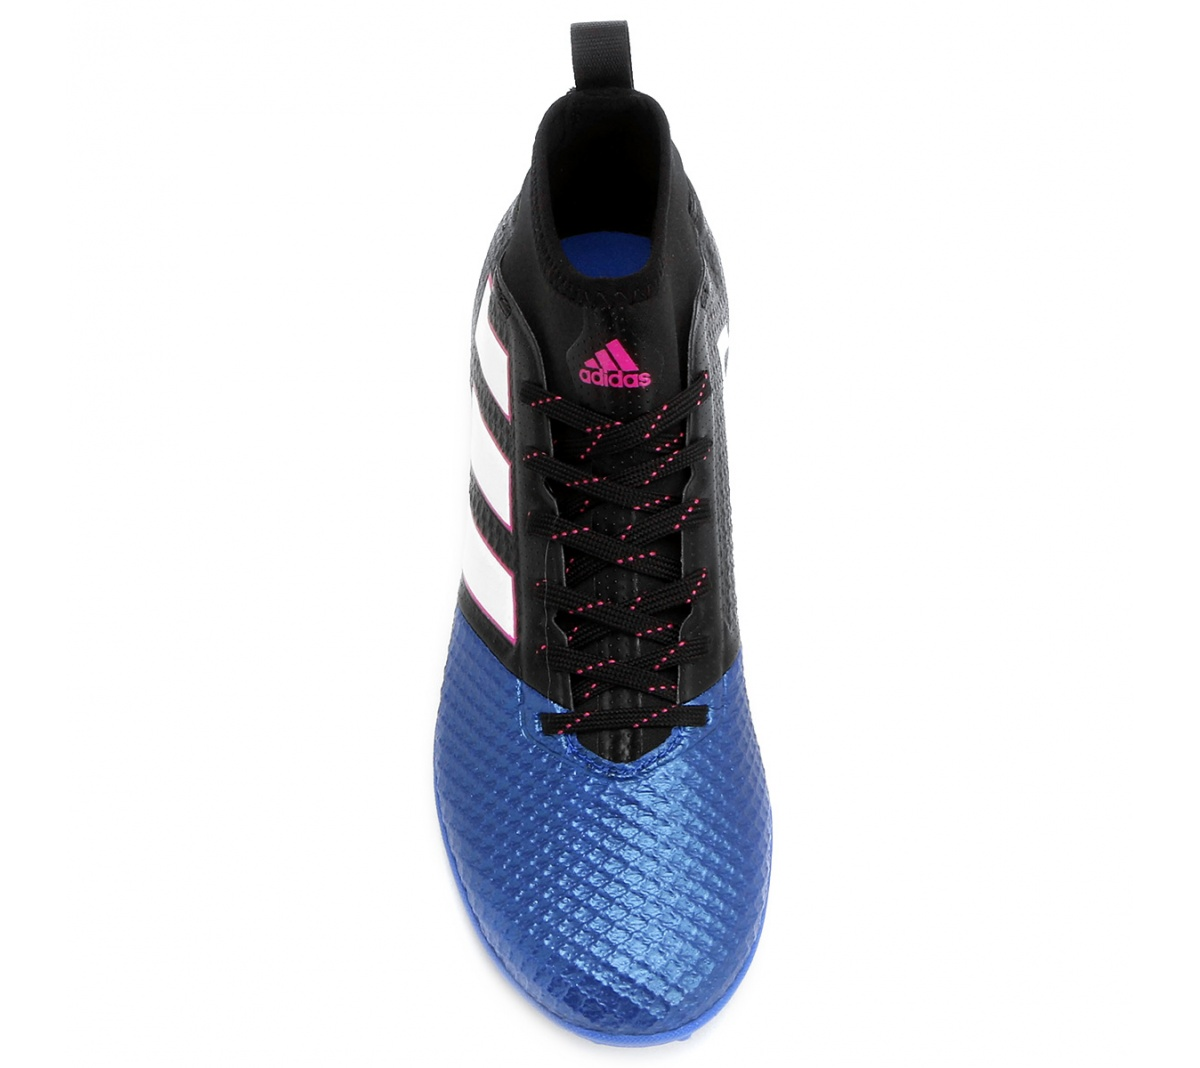 new arrival 70600 ff0d0 ... Chuteira Adidas Ace 17.3 PRIMEMESH Society